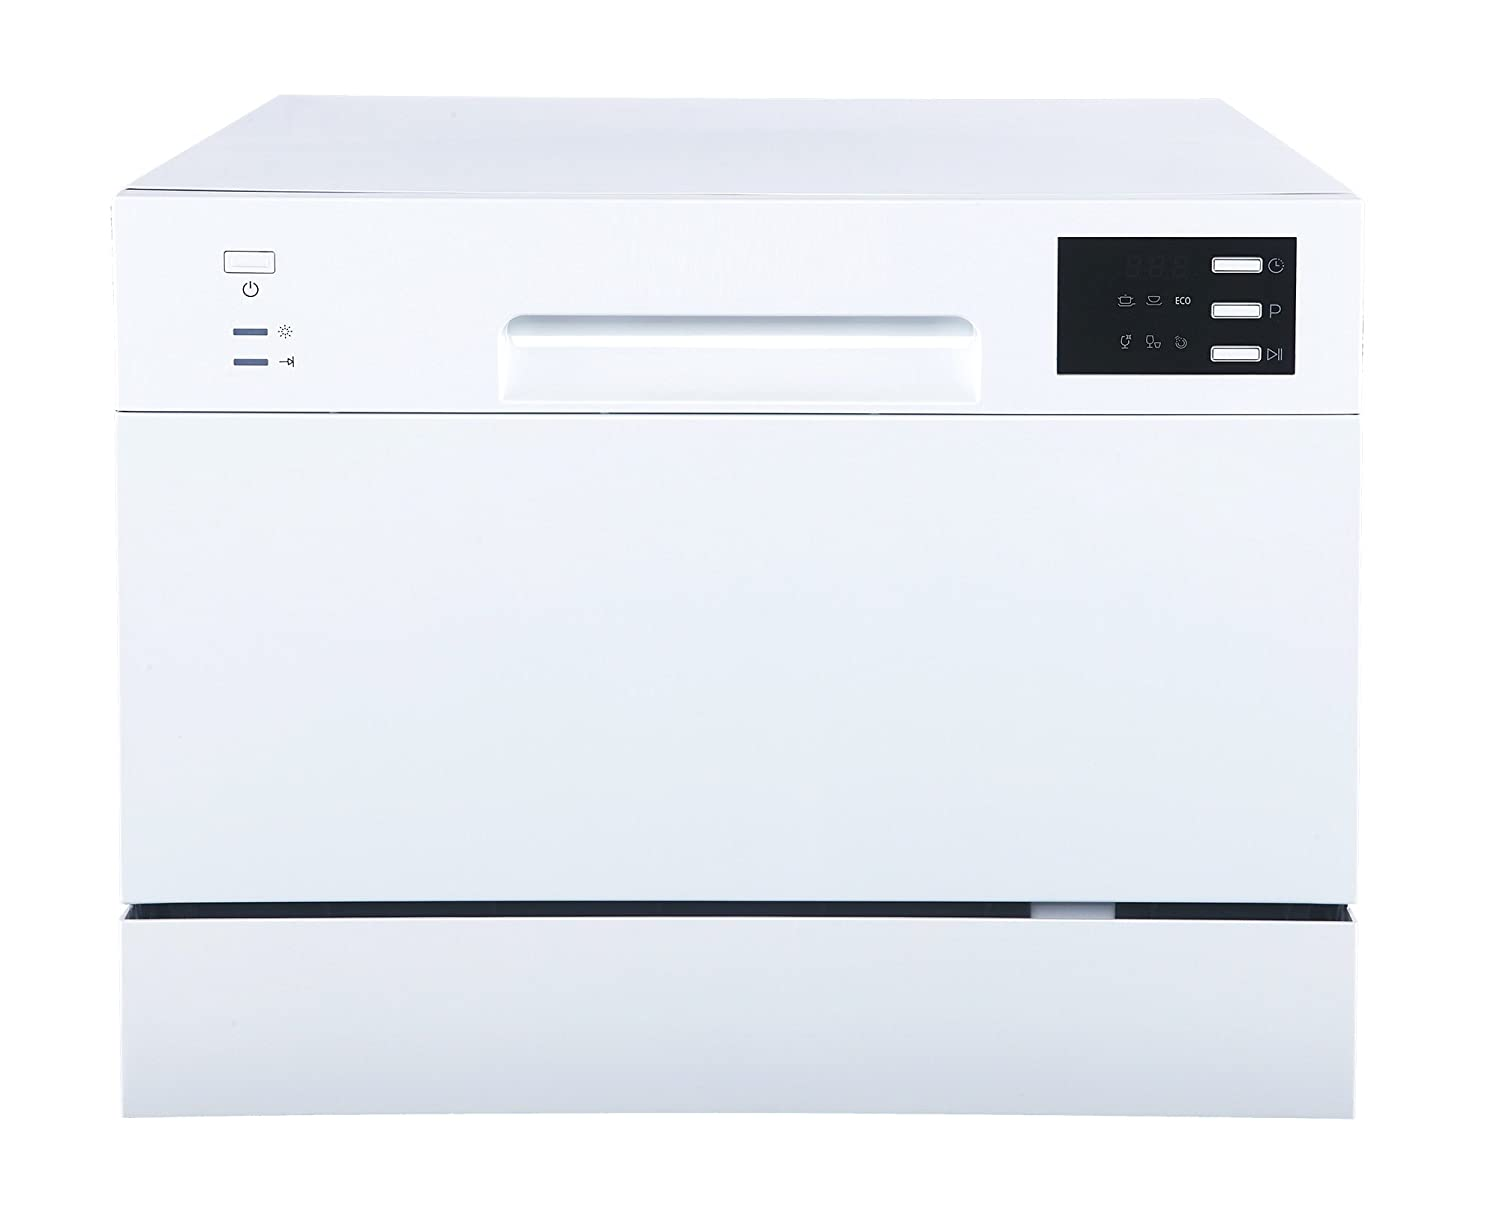 SPT SD-2225DW Countertop Dishwasher with Delay Start & LED, White, White Sunpentown